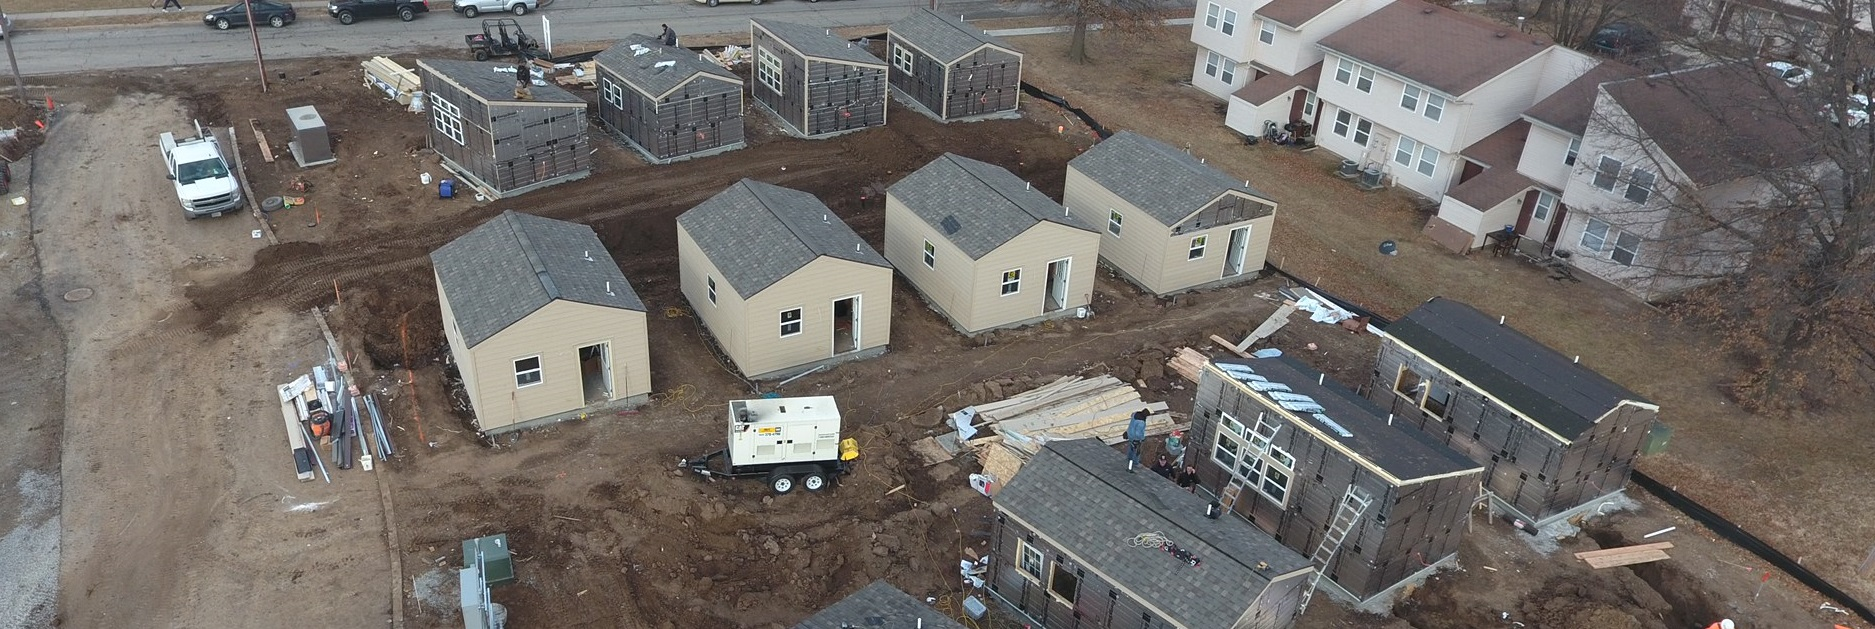 Tiny-homes - Veterans Village - Veterans Community Project - VCP - Oddo Deelopment